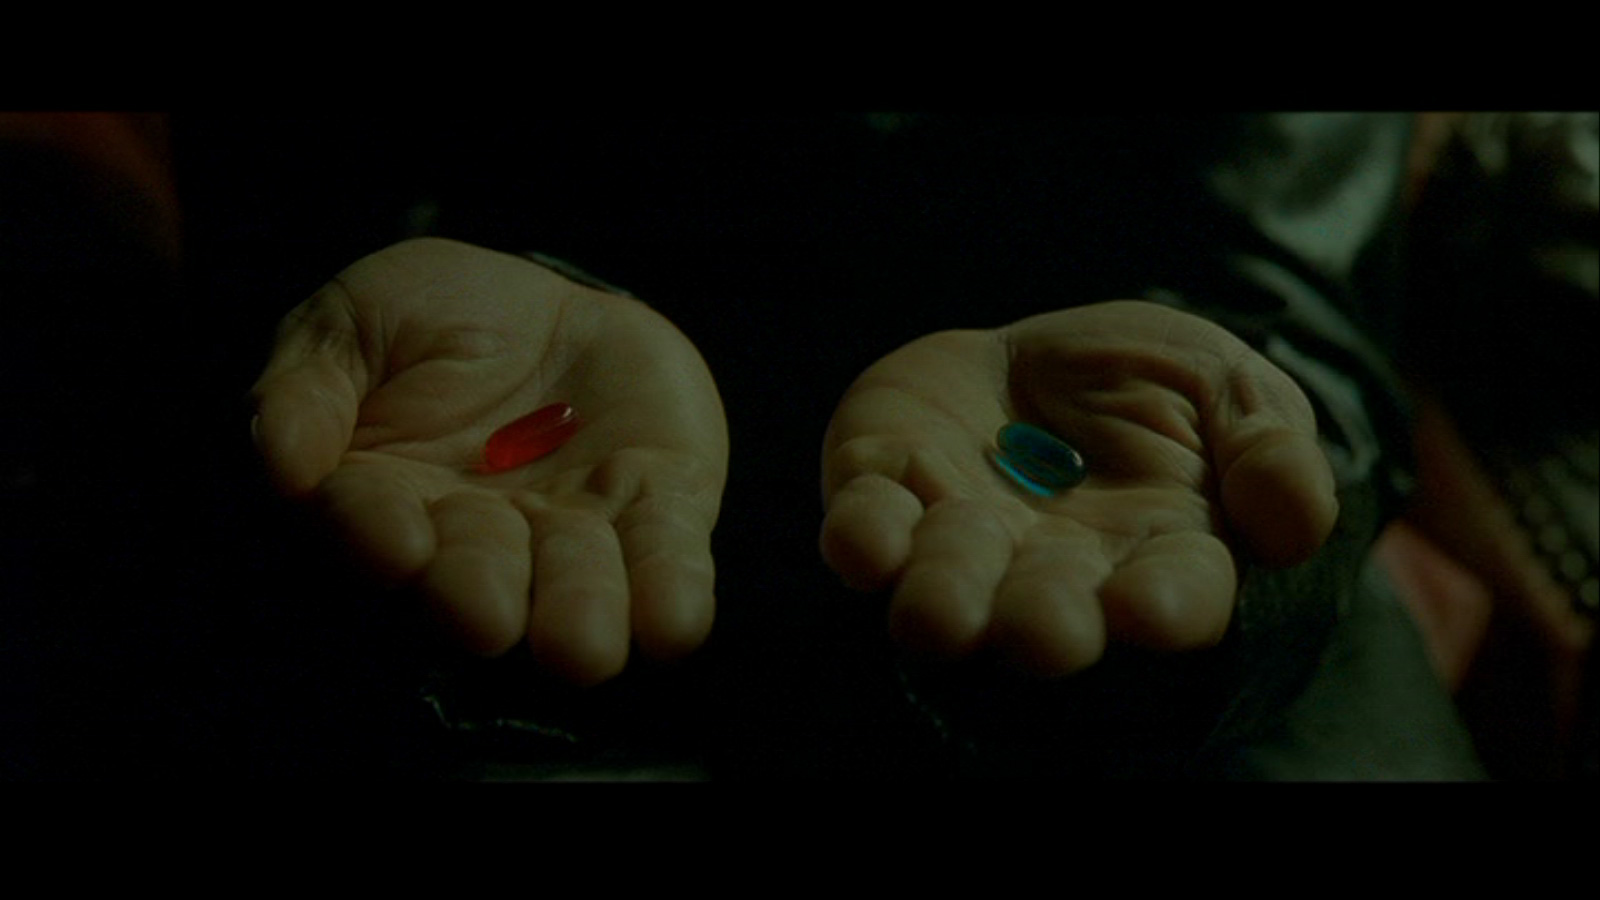 Neos psychological journey in the matrix